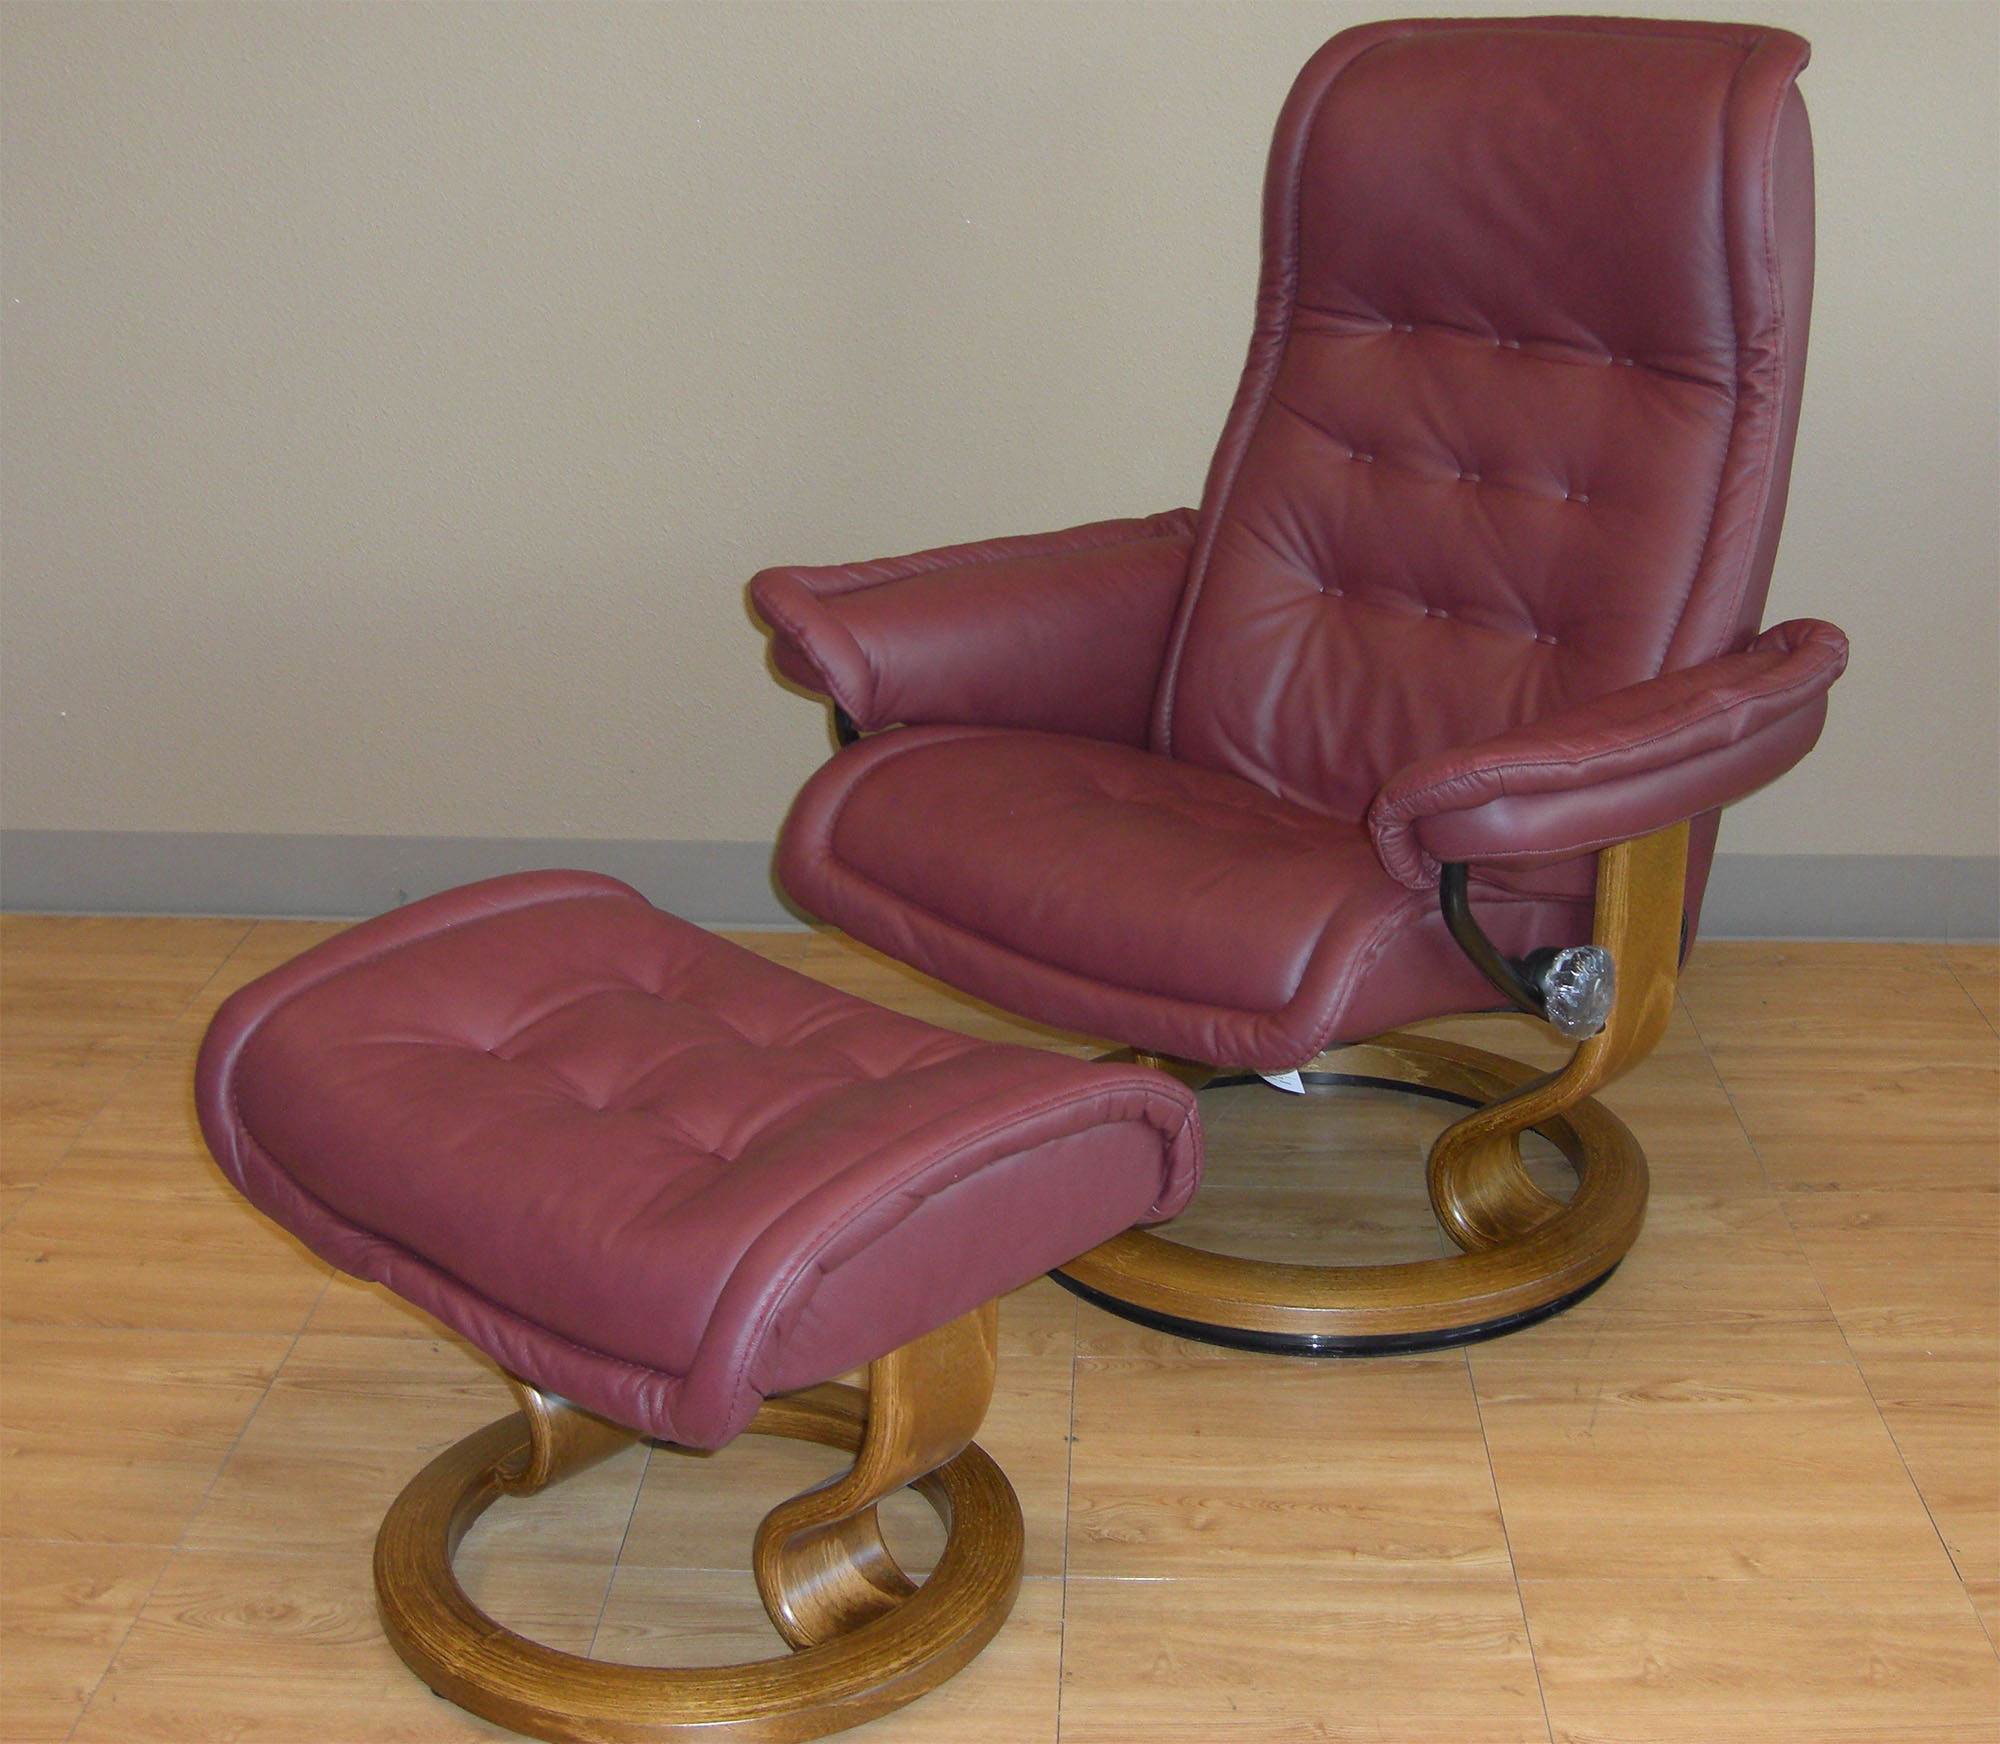 Stressless Paloma New Winered 09427 Leather Color Recliner Chair and Ottoman from Ekornes